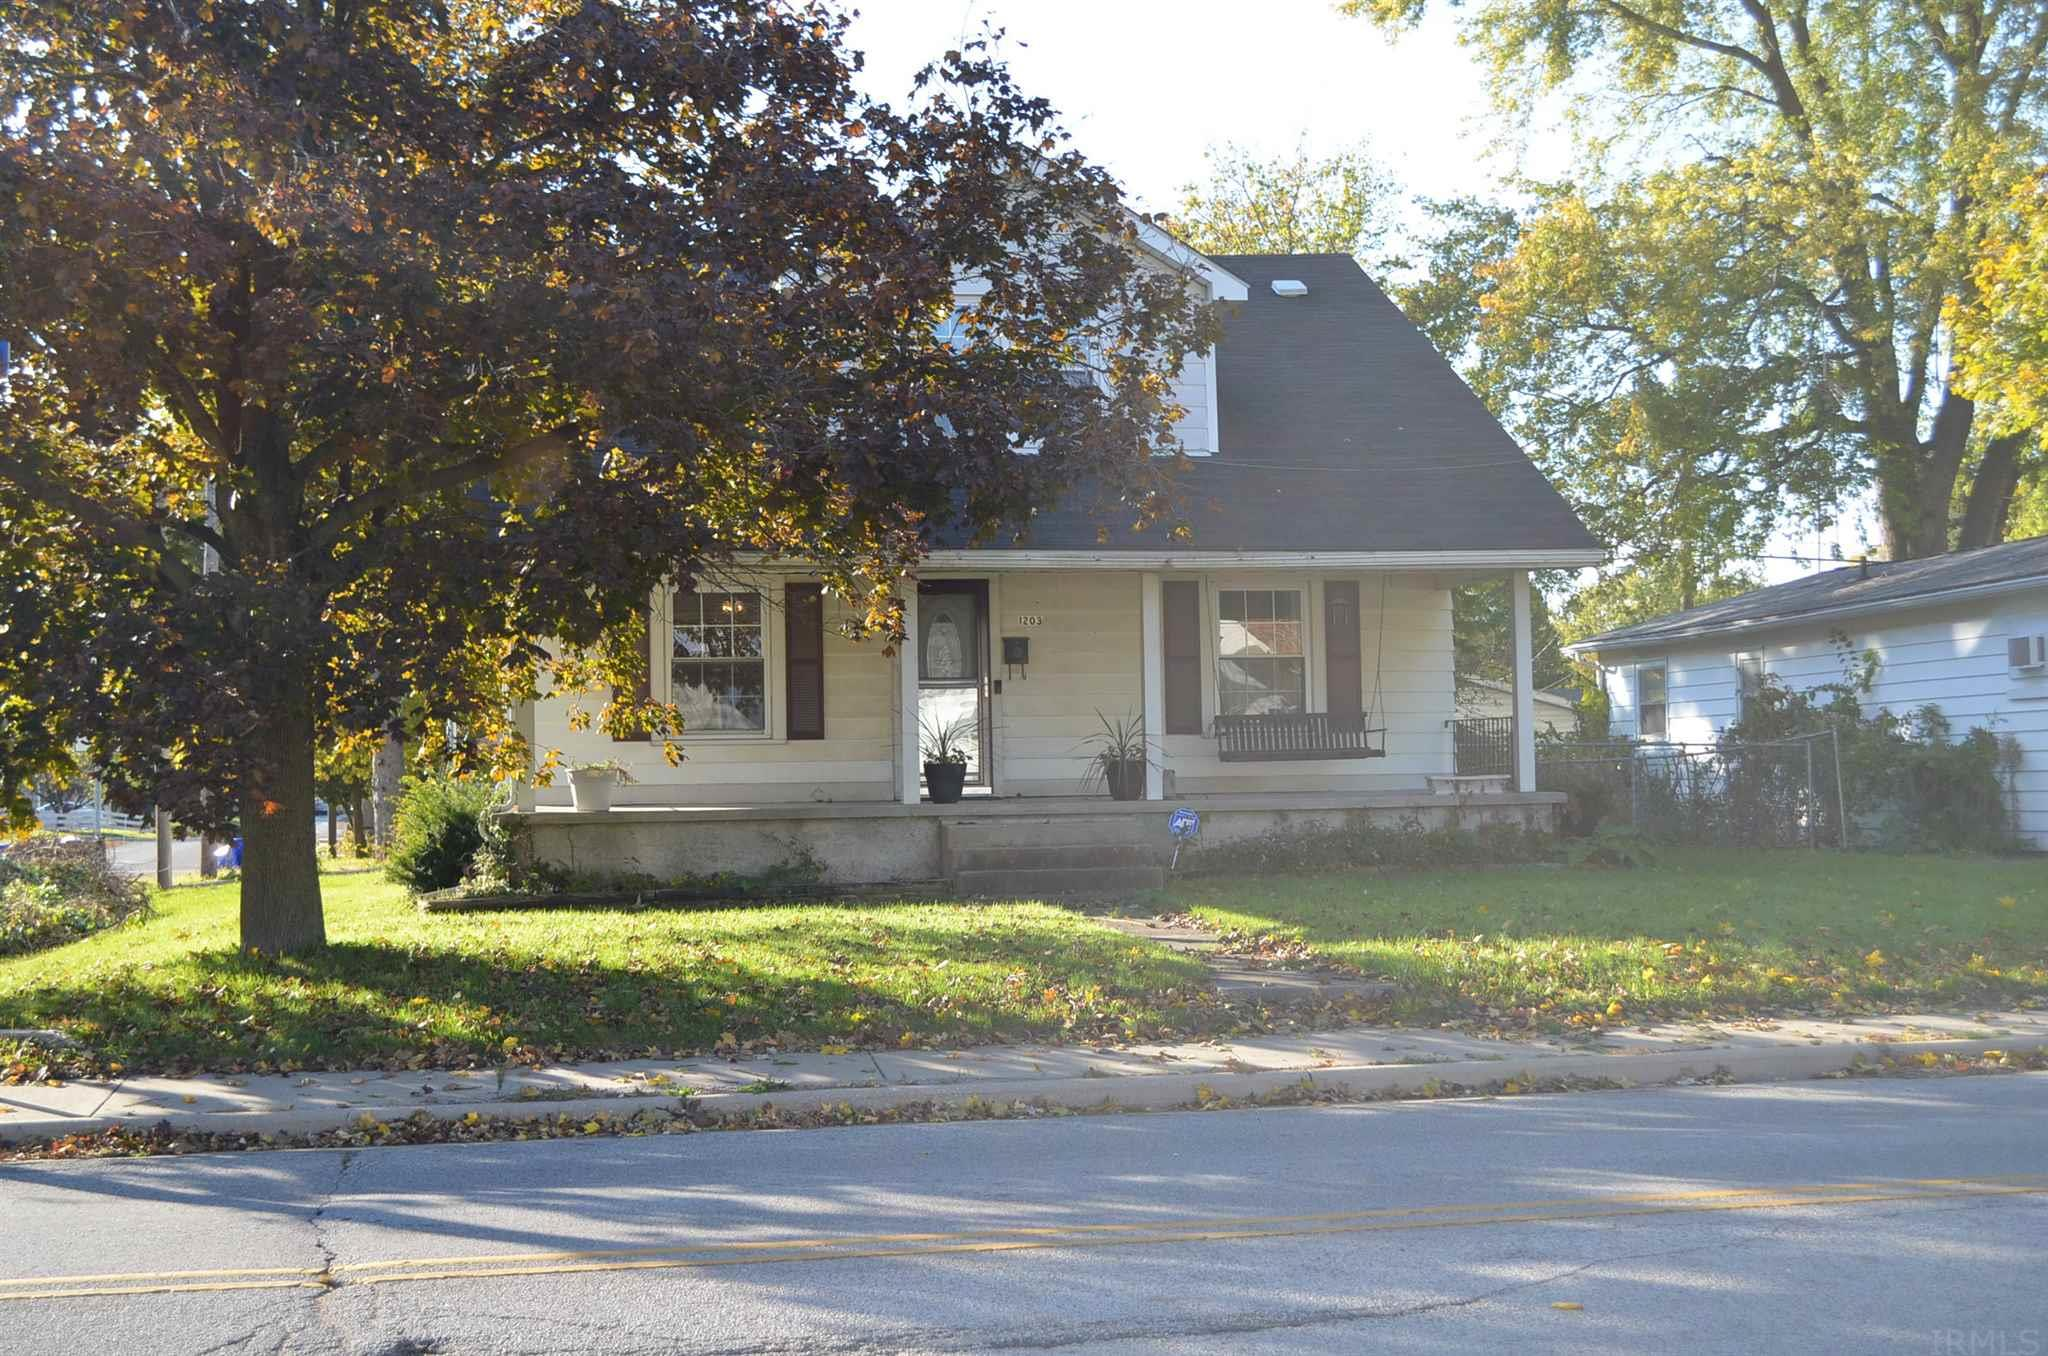 1203 N Philips, Kokomo, IN 46901